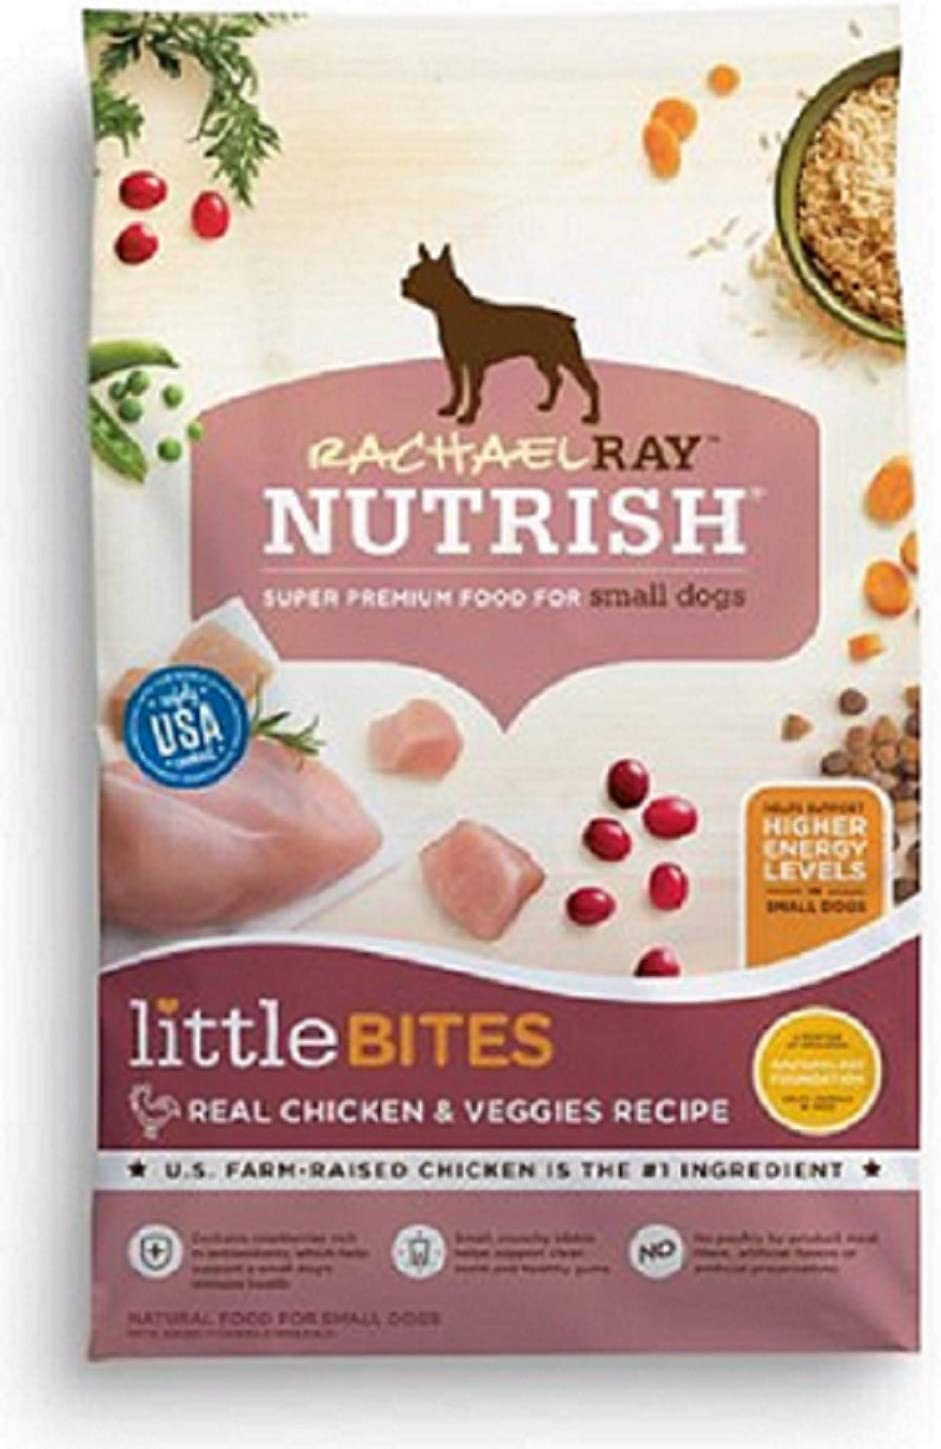 Rachael Ray Nutrish Natural Dry Dog Food 2 Pack, Small Dogs Chicken